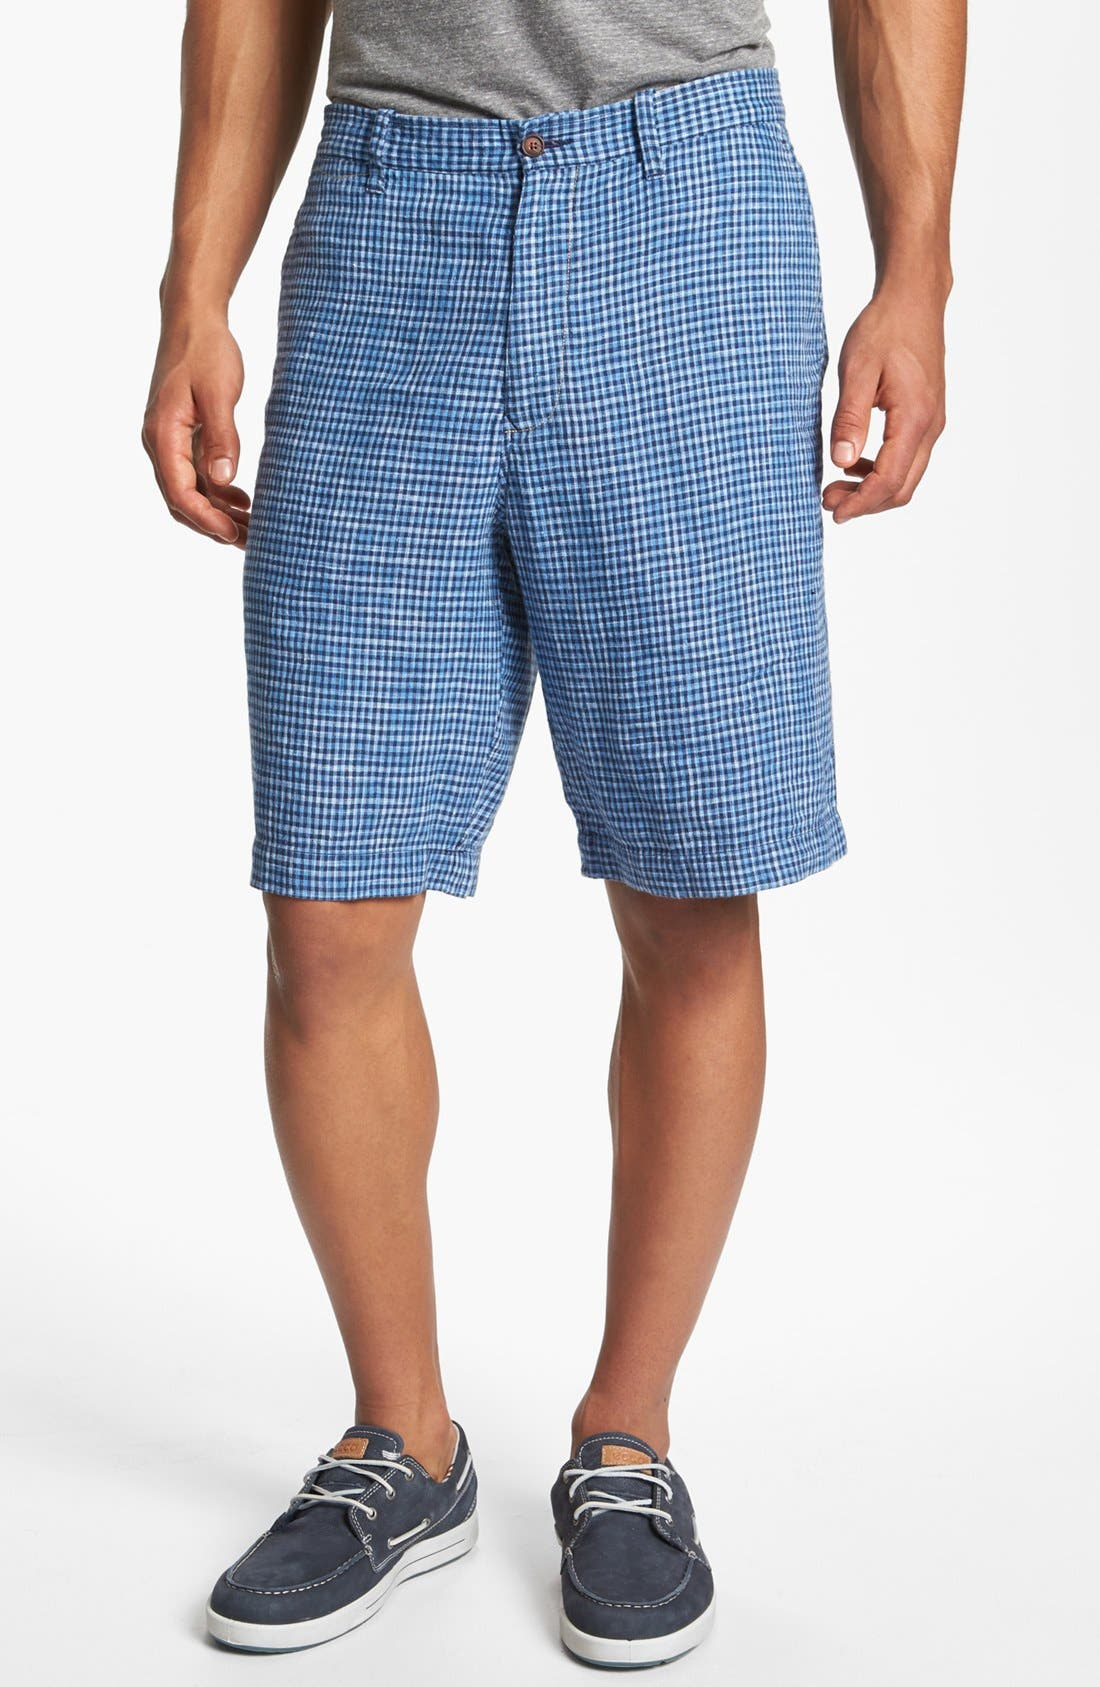 Alternate Image 1 Selected - Tommy Bahama 'Checka Colada' Shorts